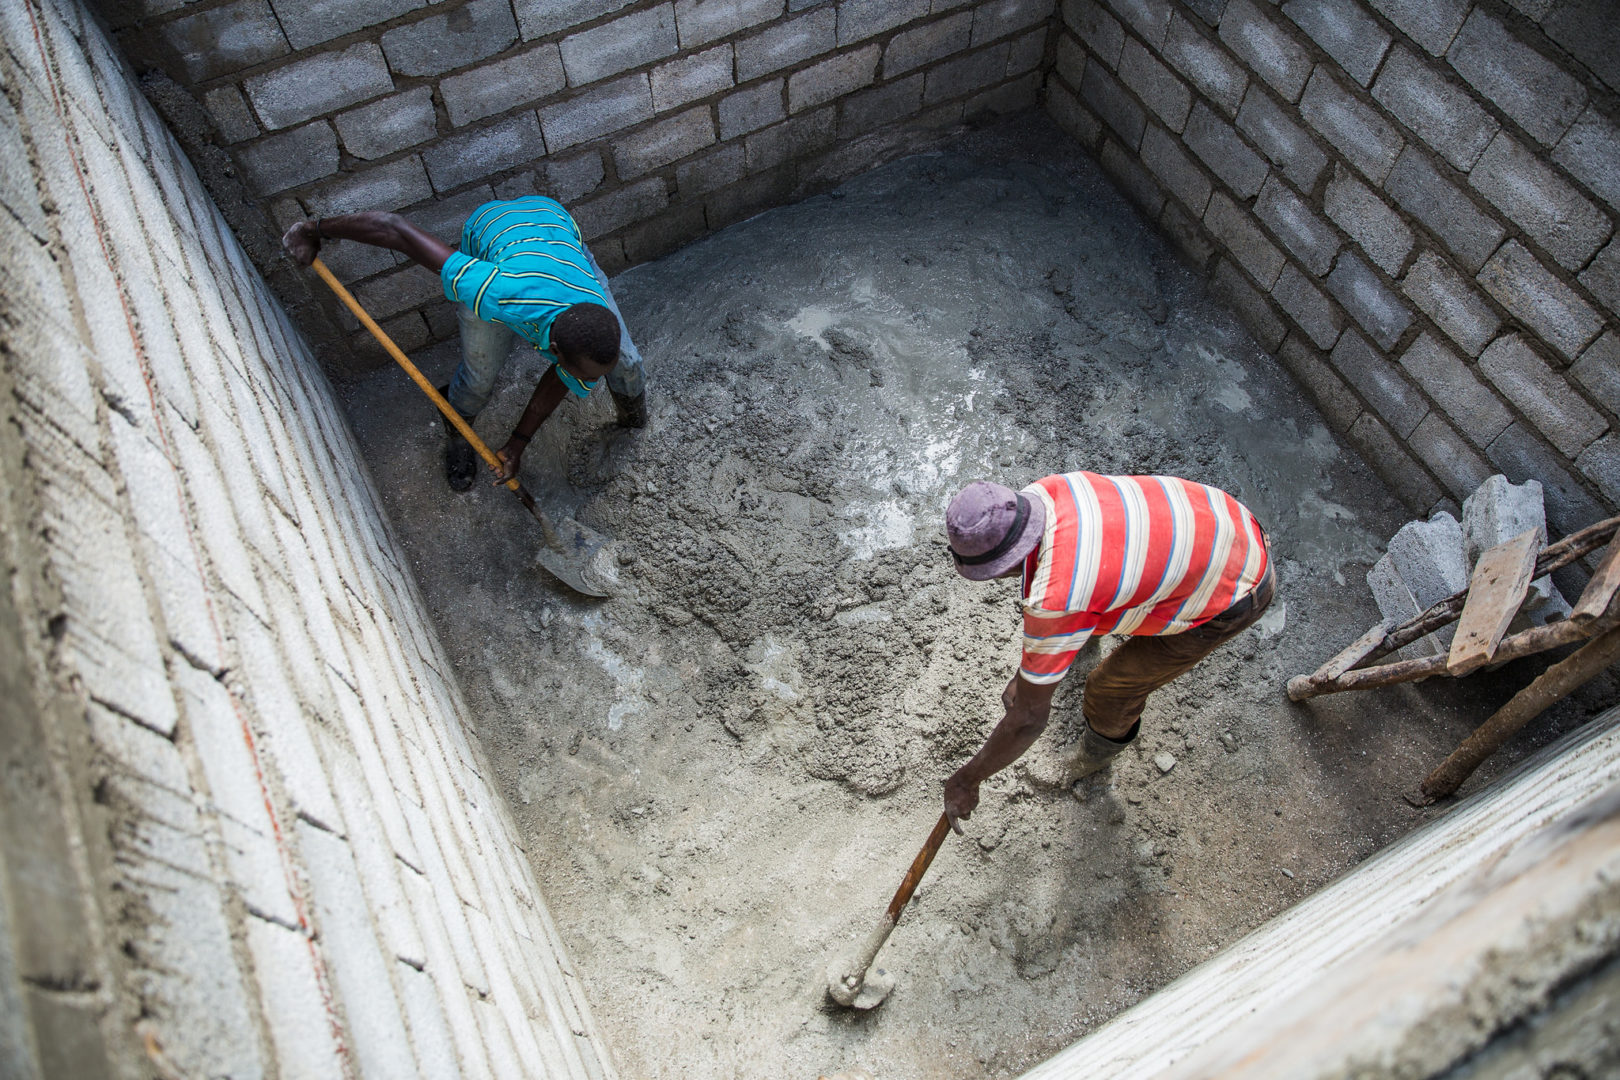 Plant With Purpose mobilizes community relief efforts in Haiti following Hurricane Matthieu.